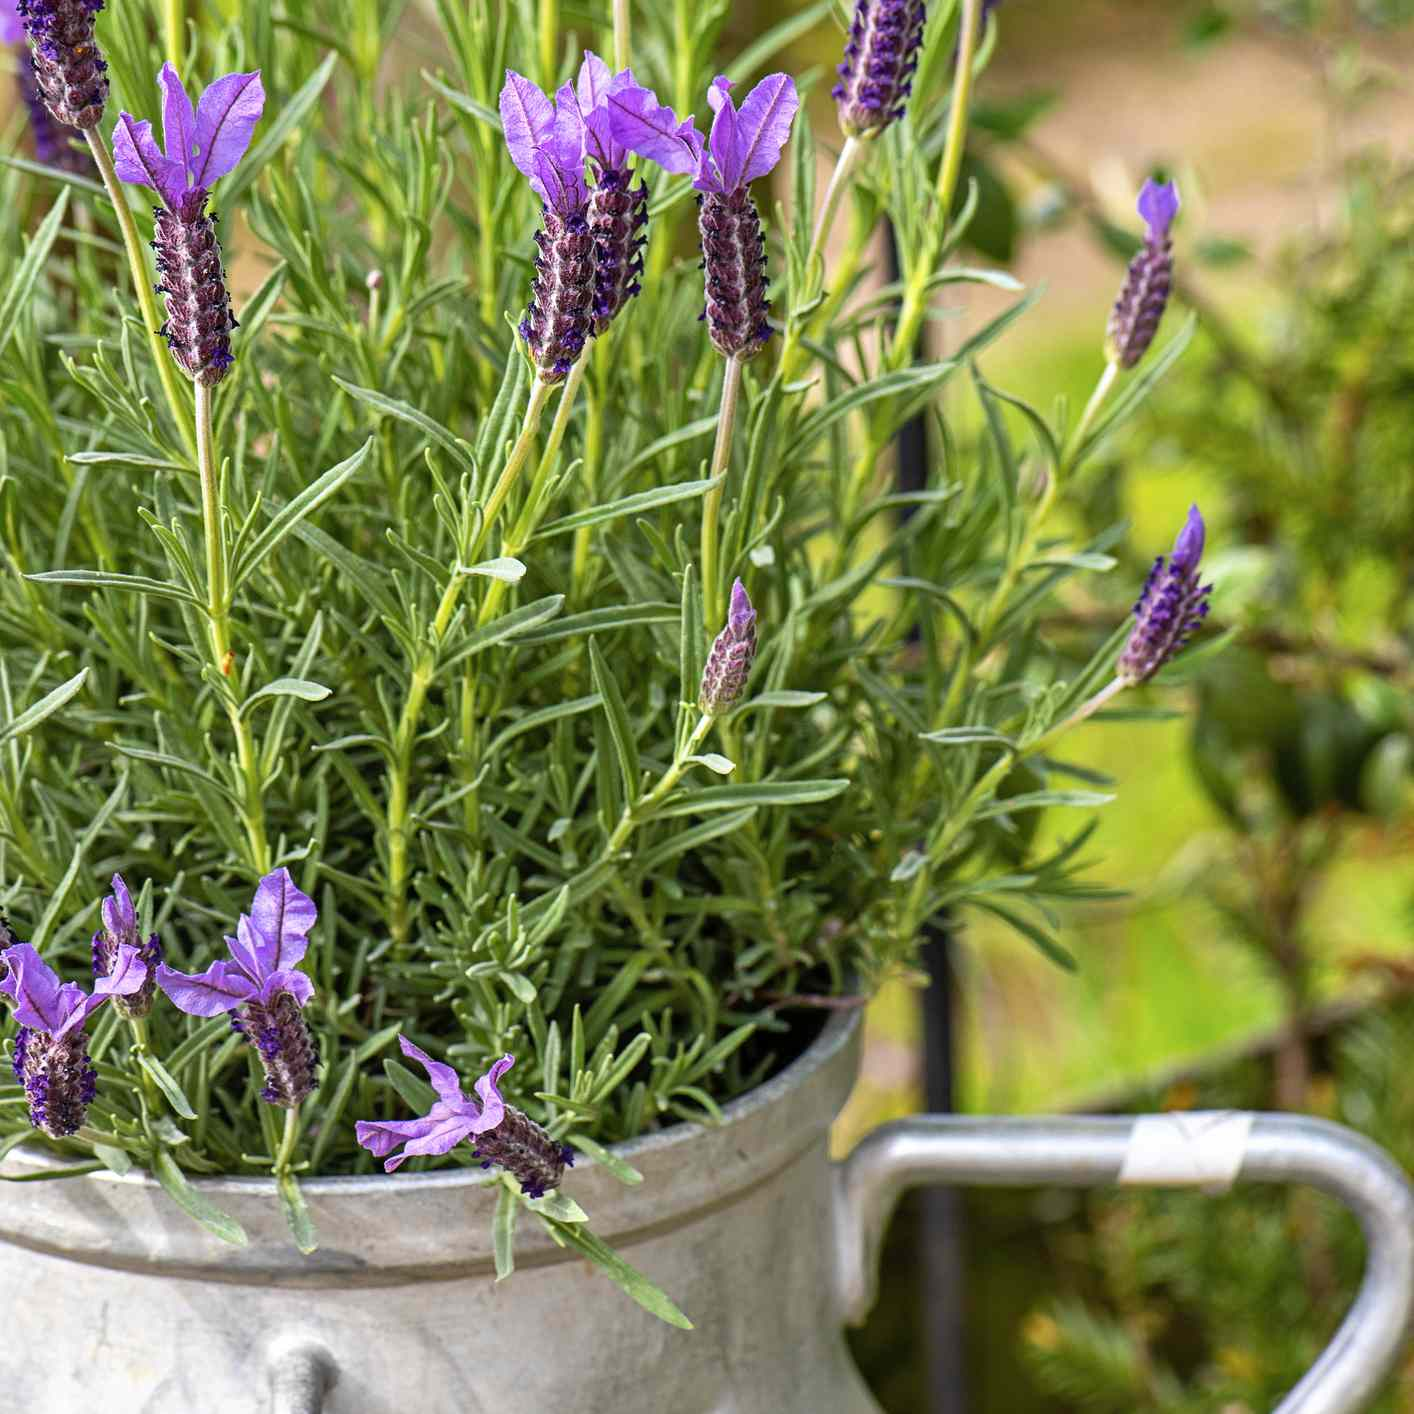 French lavender growing in a metal pot in a garden